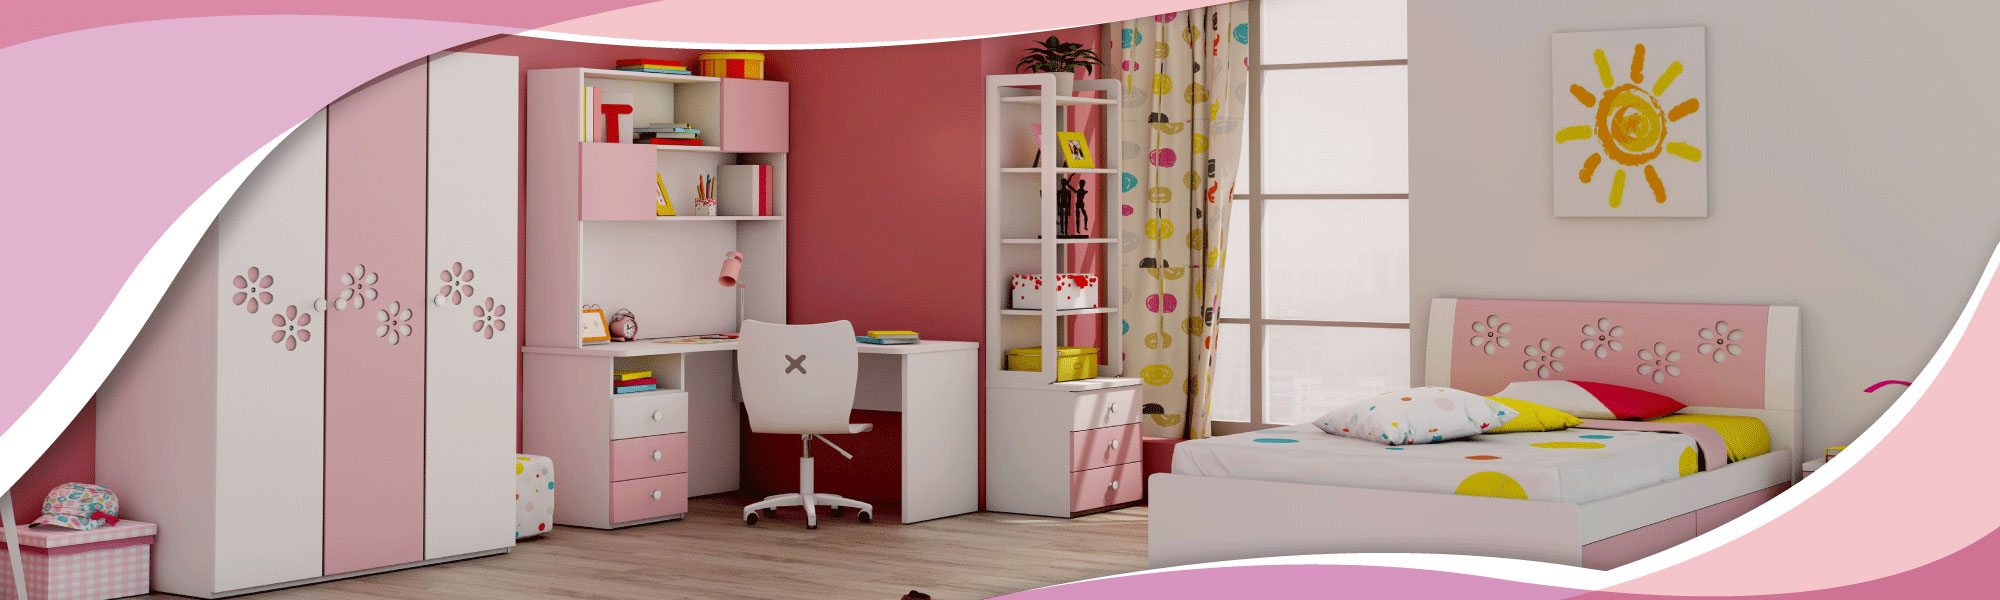 Specifications To Look For While Buying Kids Furniture